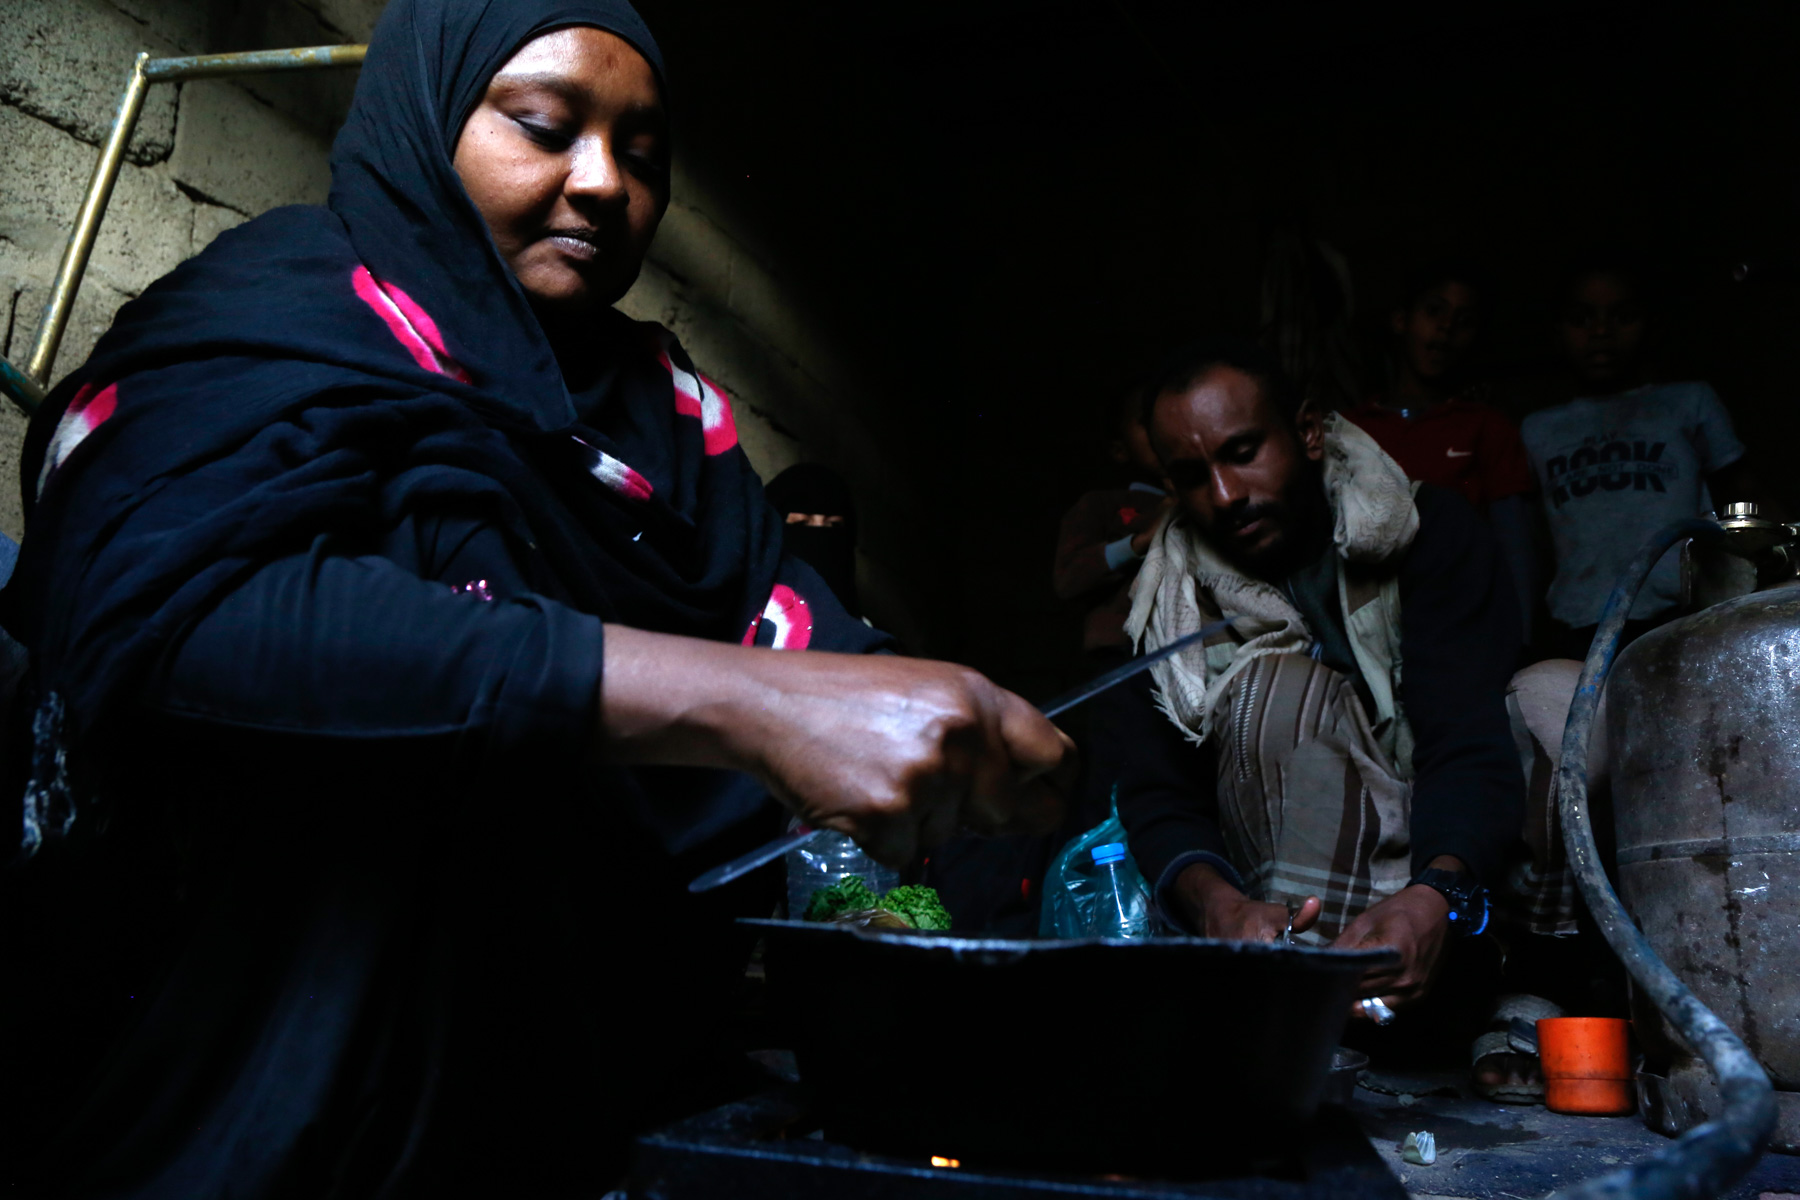 25 November 2019: Salwa Rajeh, a 45-year-old widow with four children, cooks in her rented shelter in Sana'a, Yemen. Intensifying fighting and airstrikes displaced her from Hodeida province three years earlier. 'Most days we sleep hungry.' (Photograph by Mohammed Hamoud/ Getty Images)